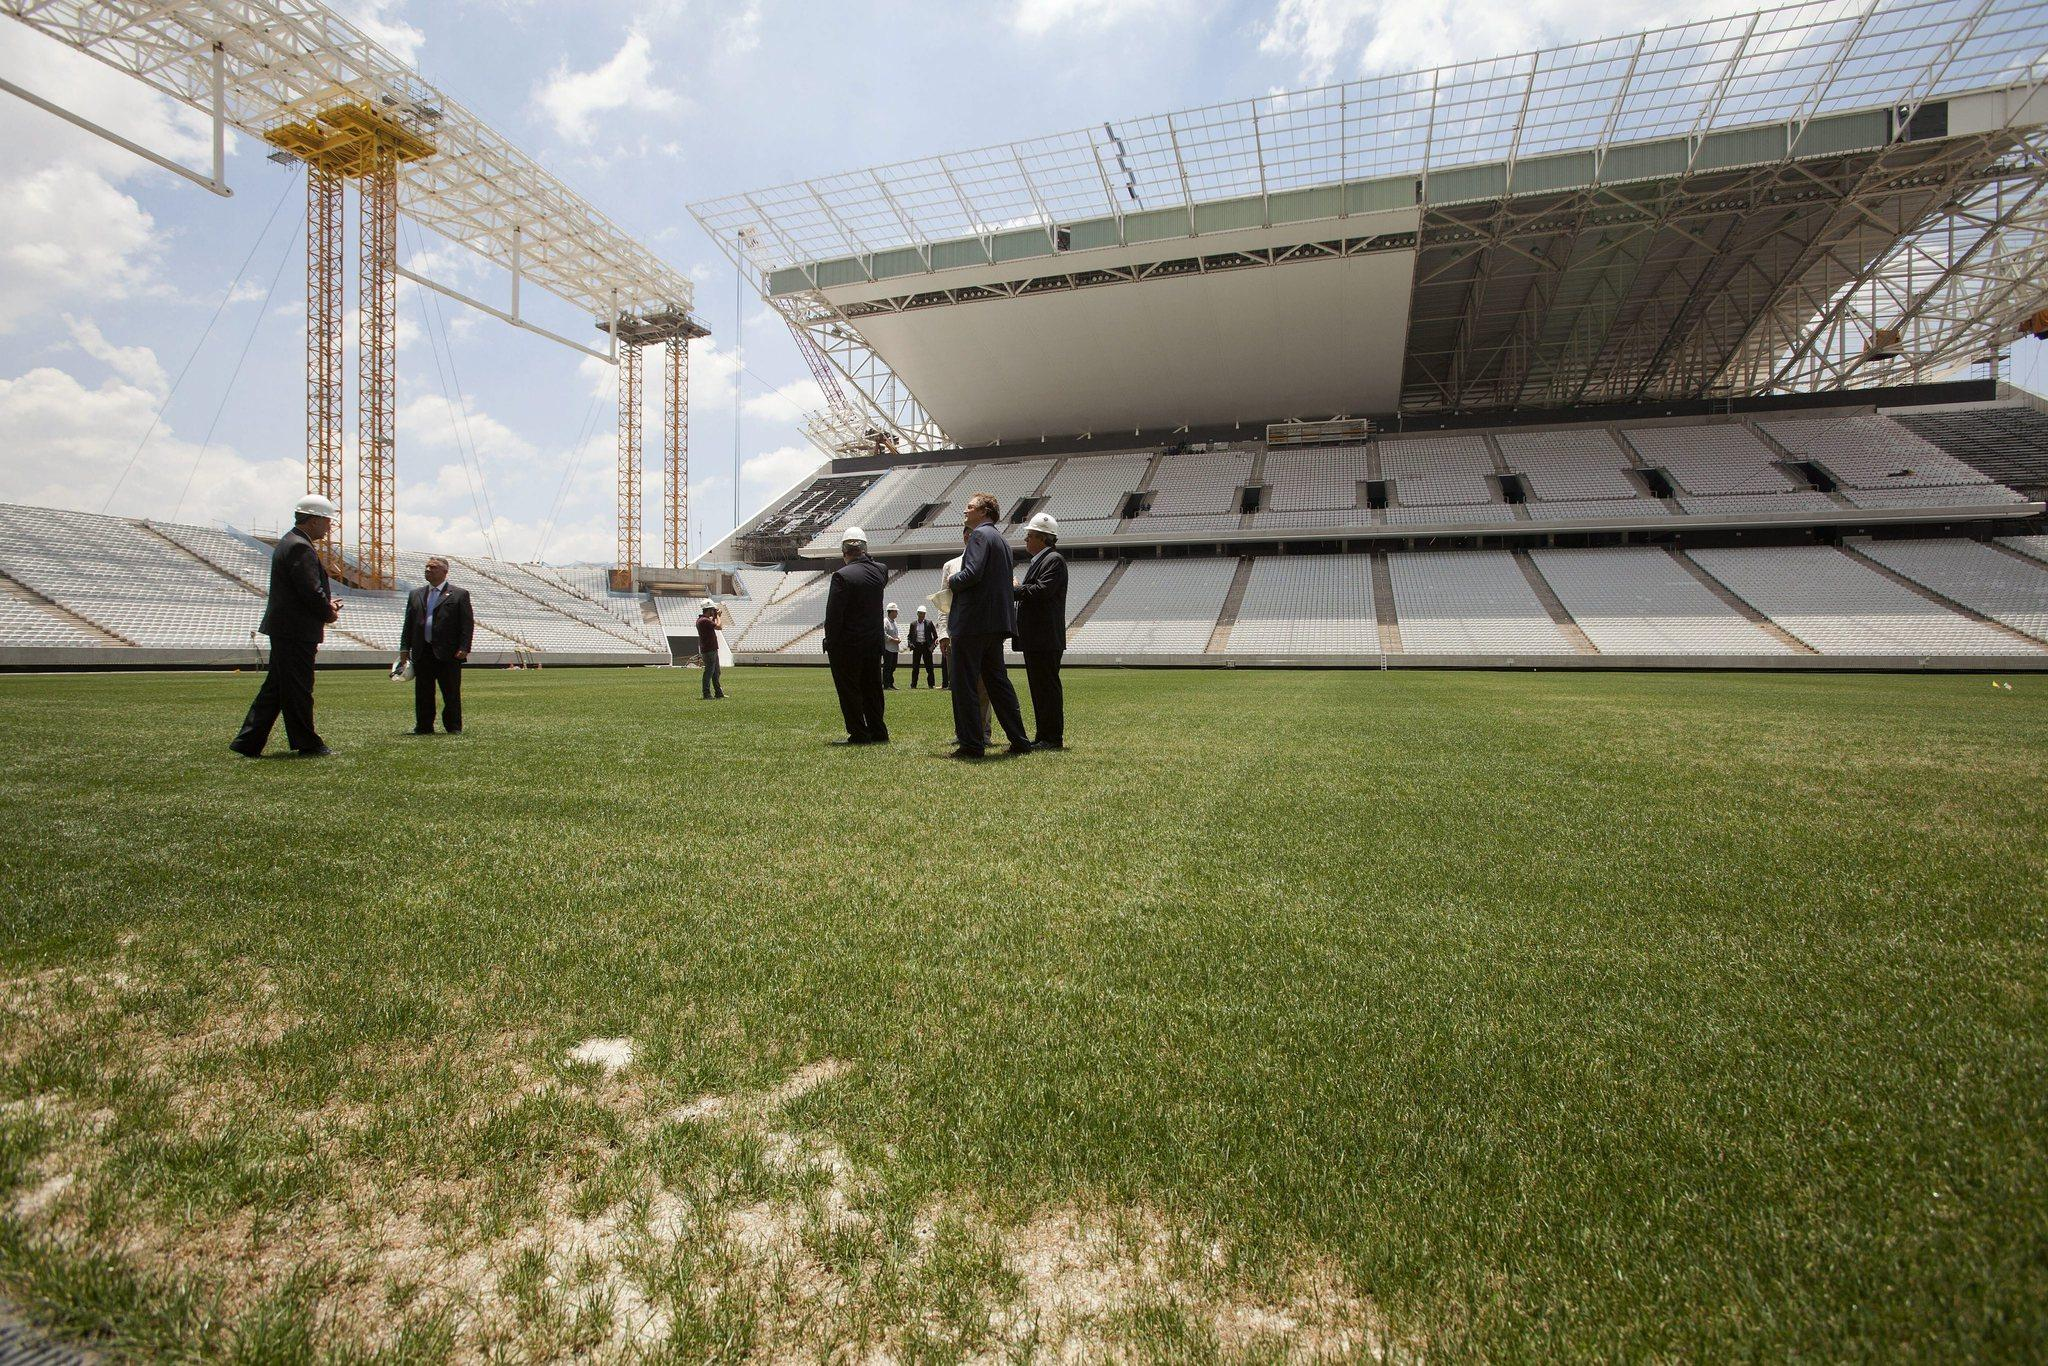 FIFA general secretary, Jerome Valcke (2-R), next to members of organizing committee for World Cup, visits the Arena Corinthians stadium, which is under construction for the FIFA World Cup Brazil 2014, in Sao Paulo.